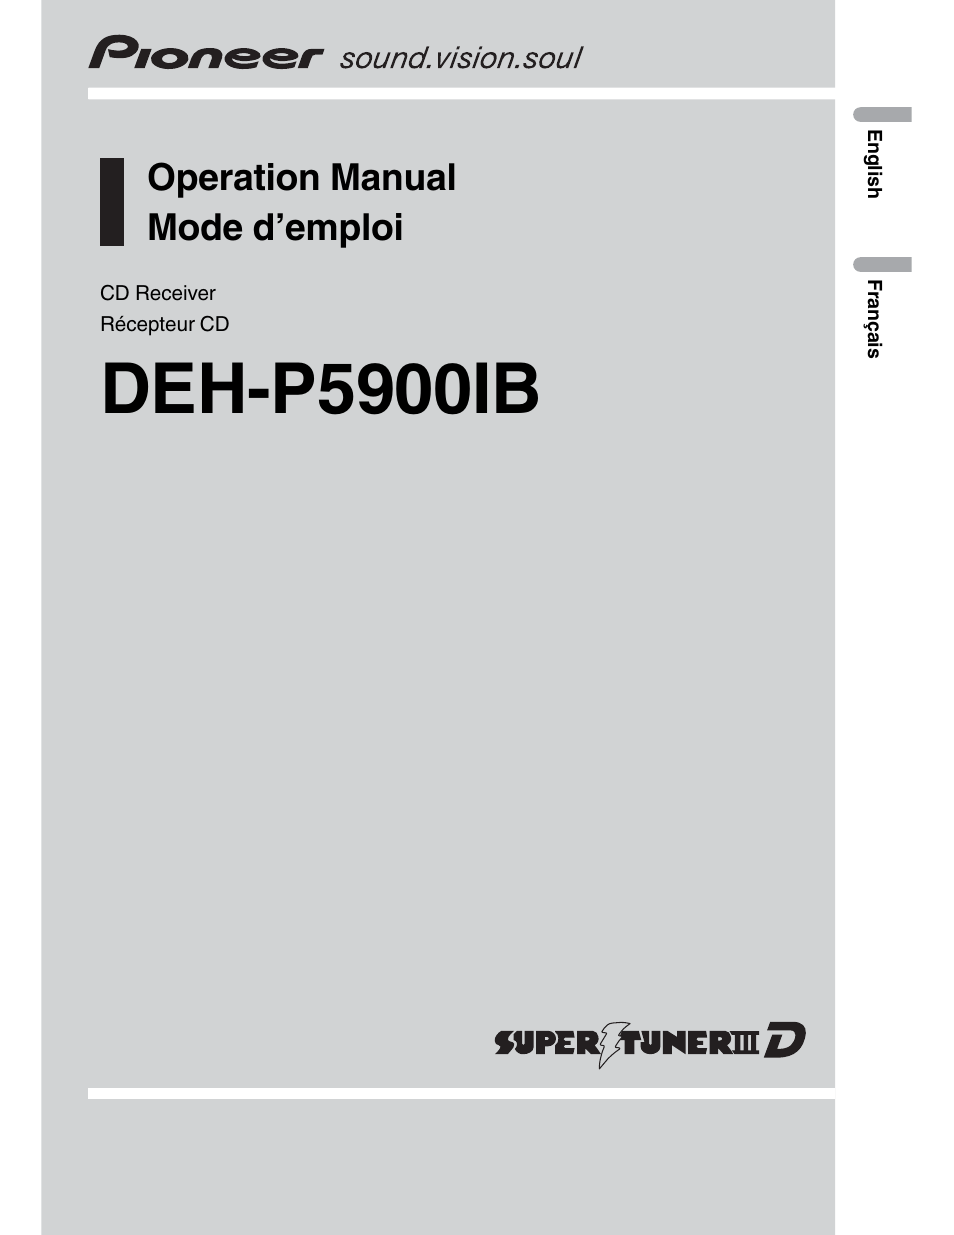 [DIAGRAM_34OR]  Pioneer DEH-P5900IB User Manual | 72 pages | Wiring Diagram Pioneer Deh P5900ib |  | Manuals Directory